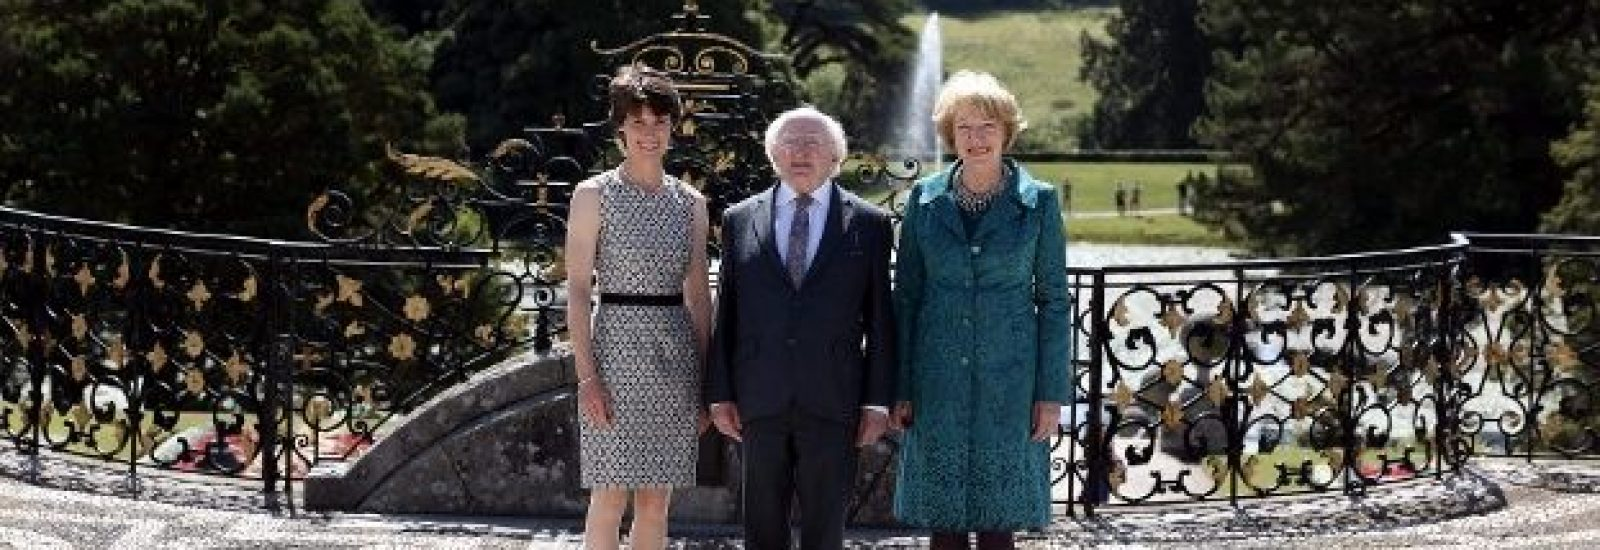 President of Ireland visits Powerscourt Gardens